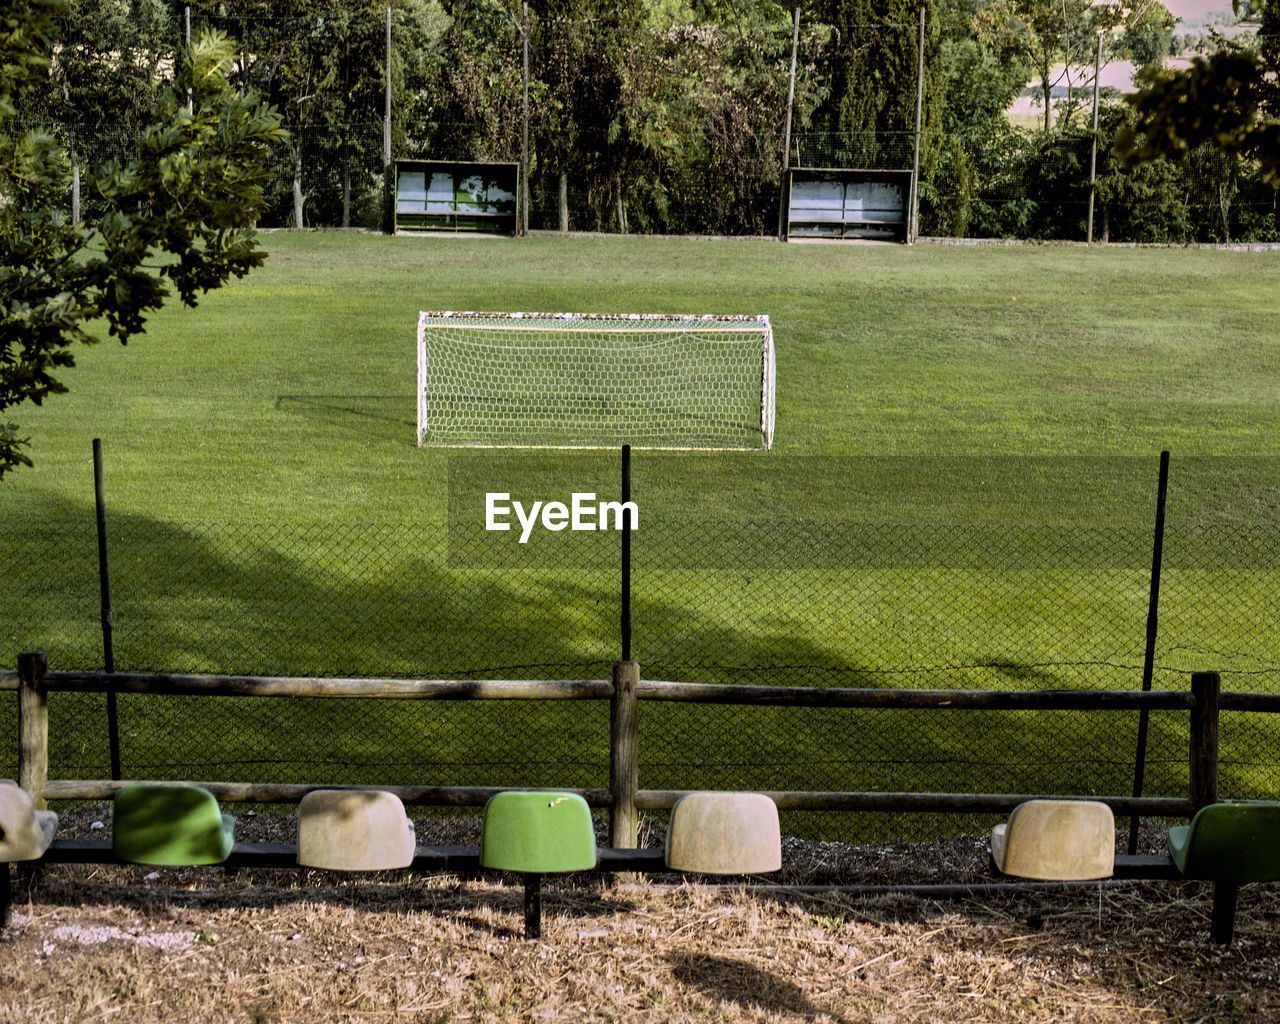 plant, grass, nature, sport, absence, day, soccer field, no people, outdoors, green color, land, tree, soccer, playing field, team sport, empty, fence, architecture, tranquility, sunlight